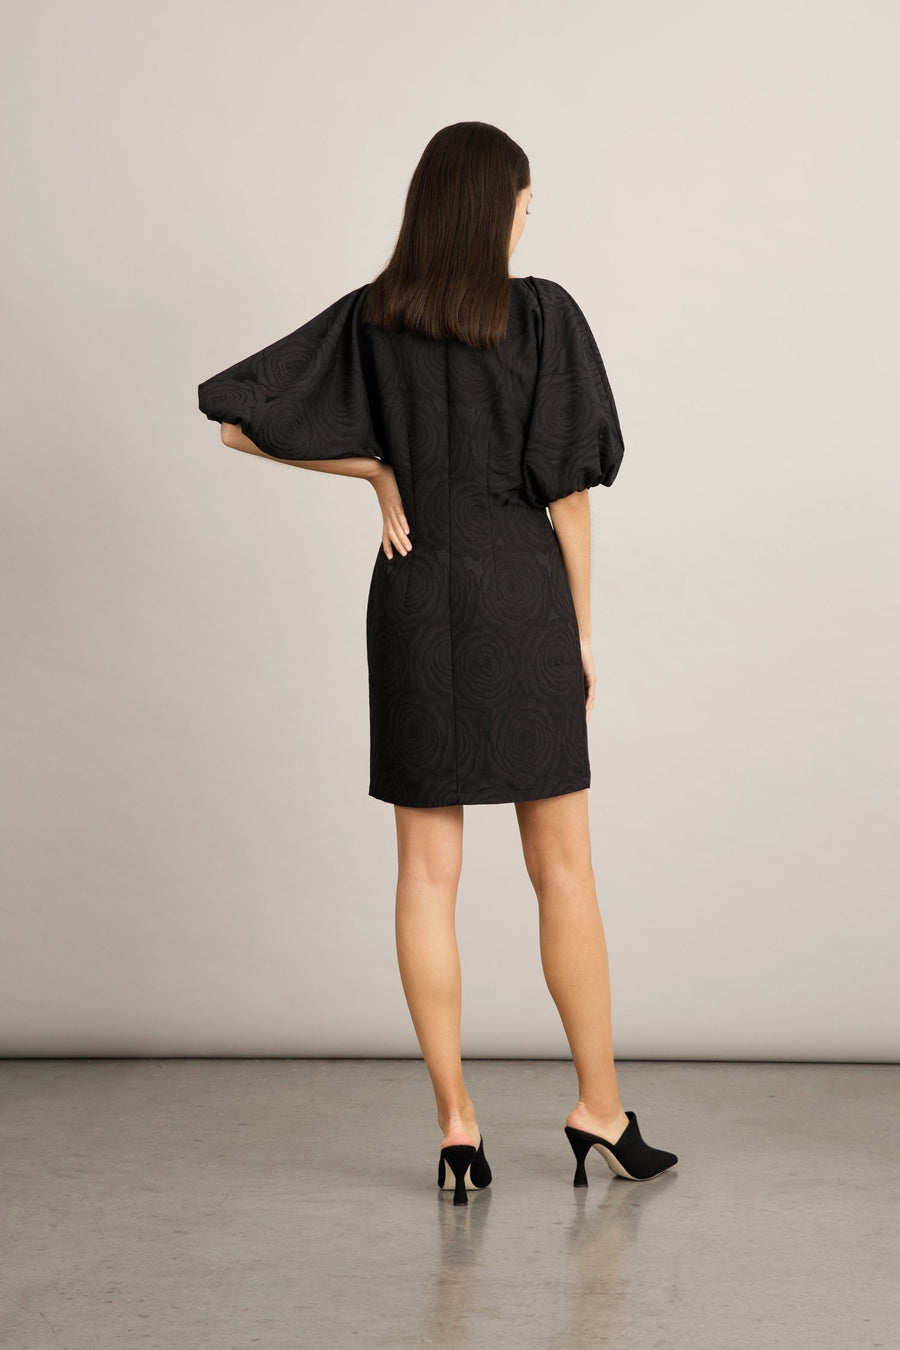 BRERA DRESS - BLACK JACQUARD Dress Stylein